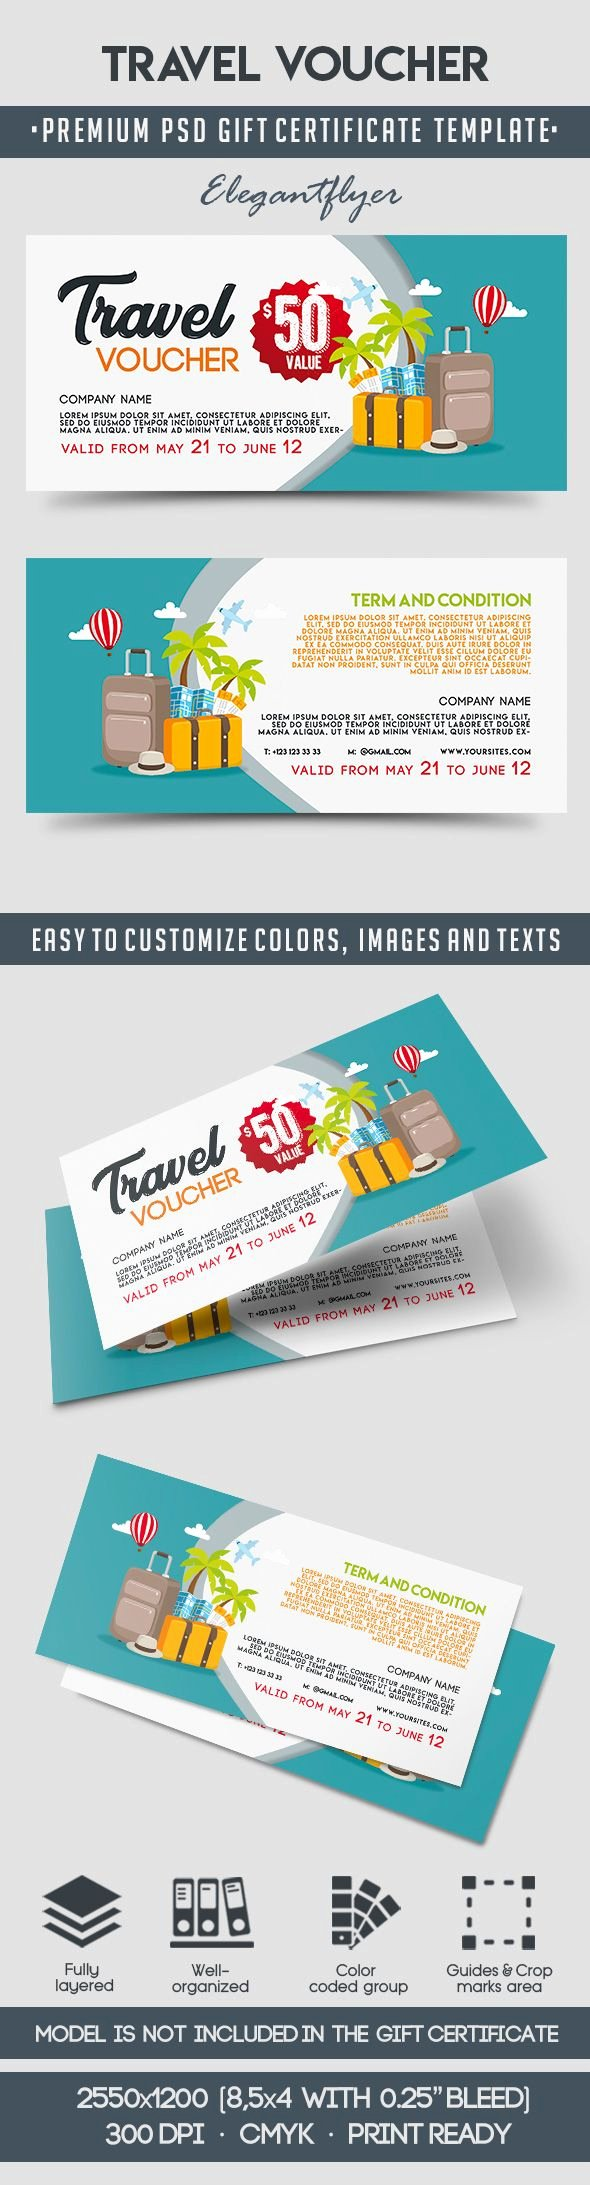 Vacation Gift Certificate Template New Travel Voucher Template – by Elegantflyer